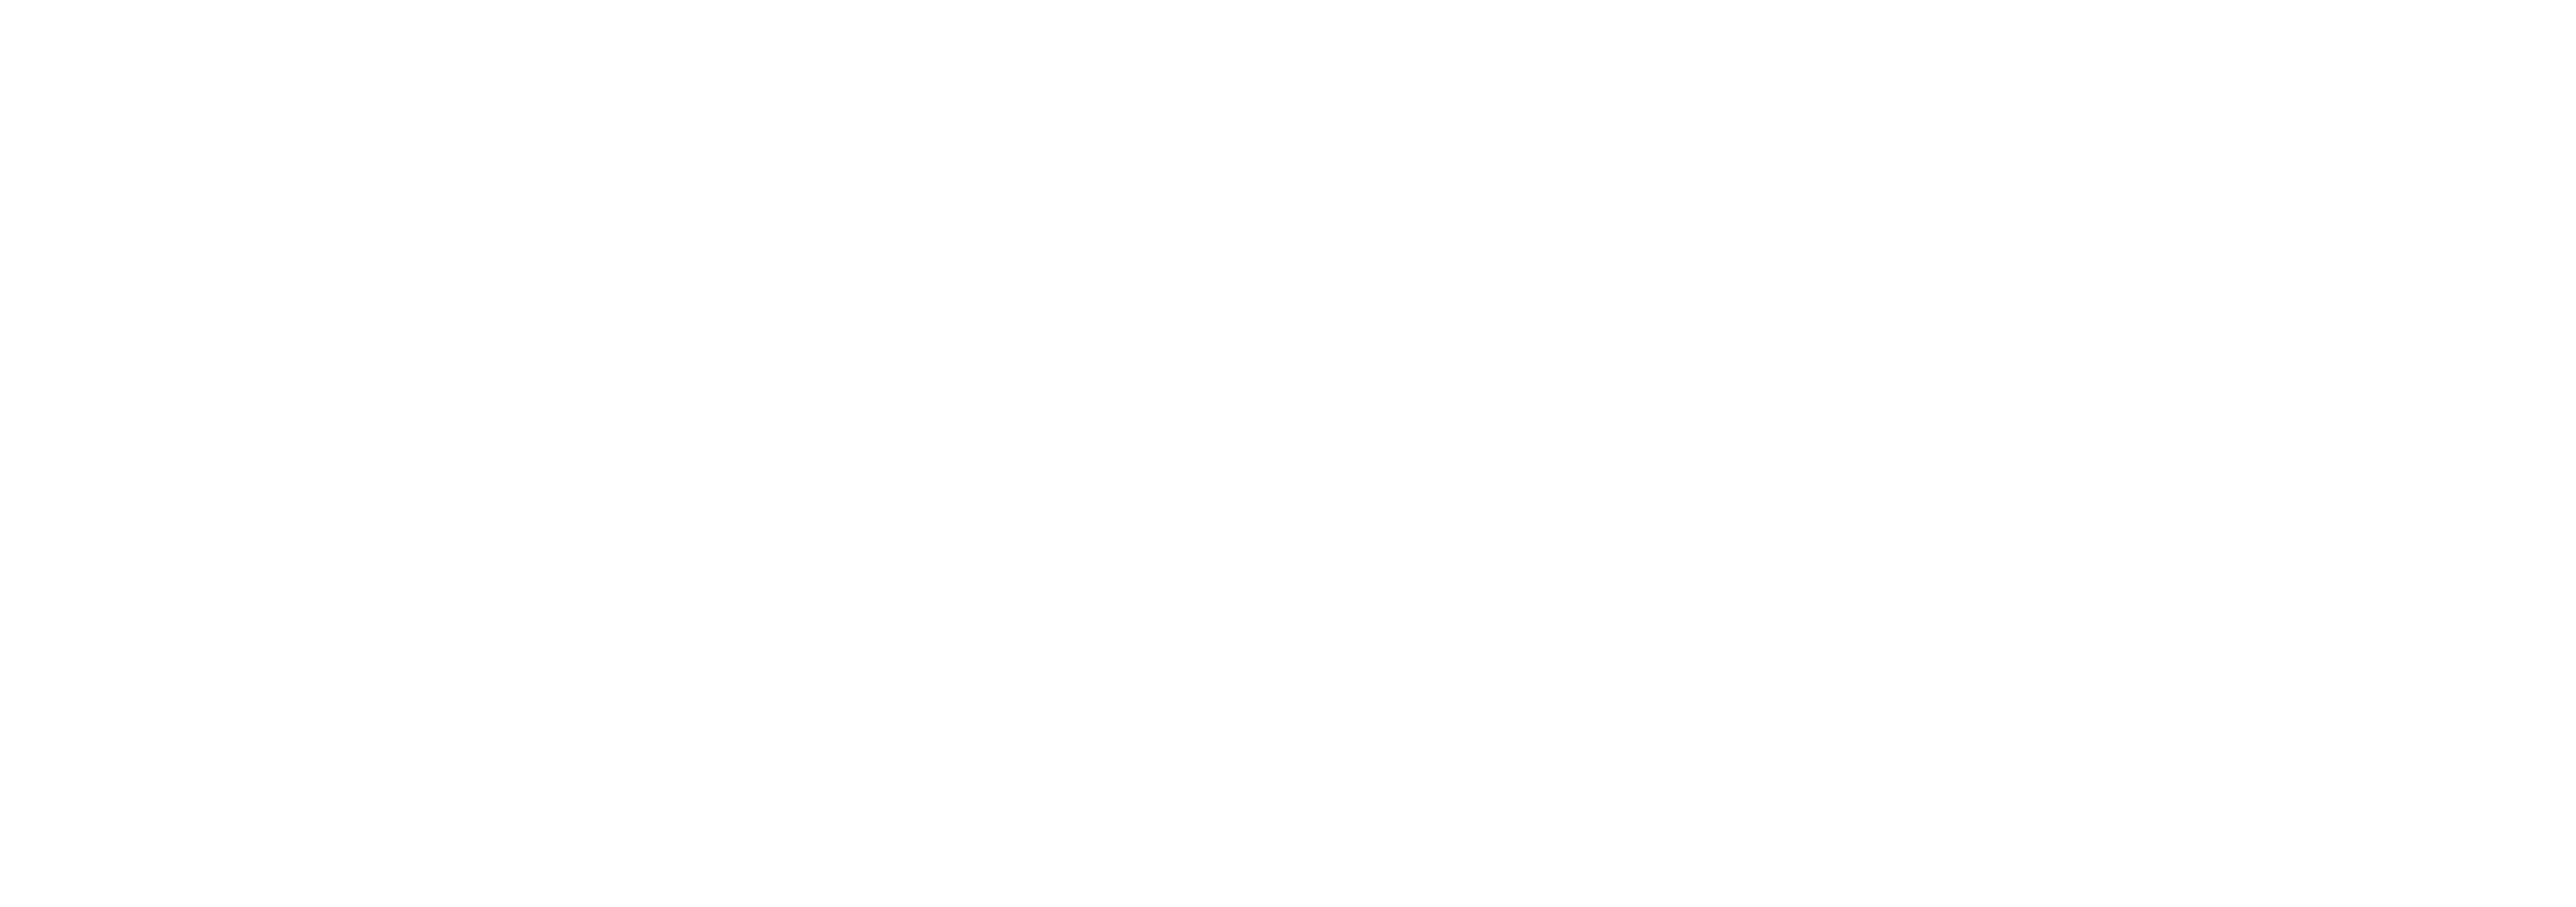 The Pisaneschi Group